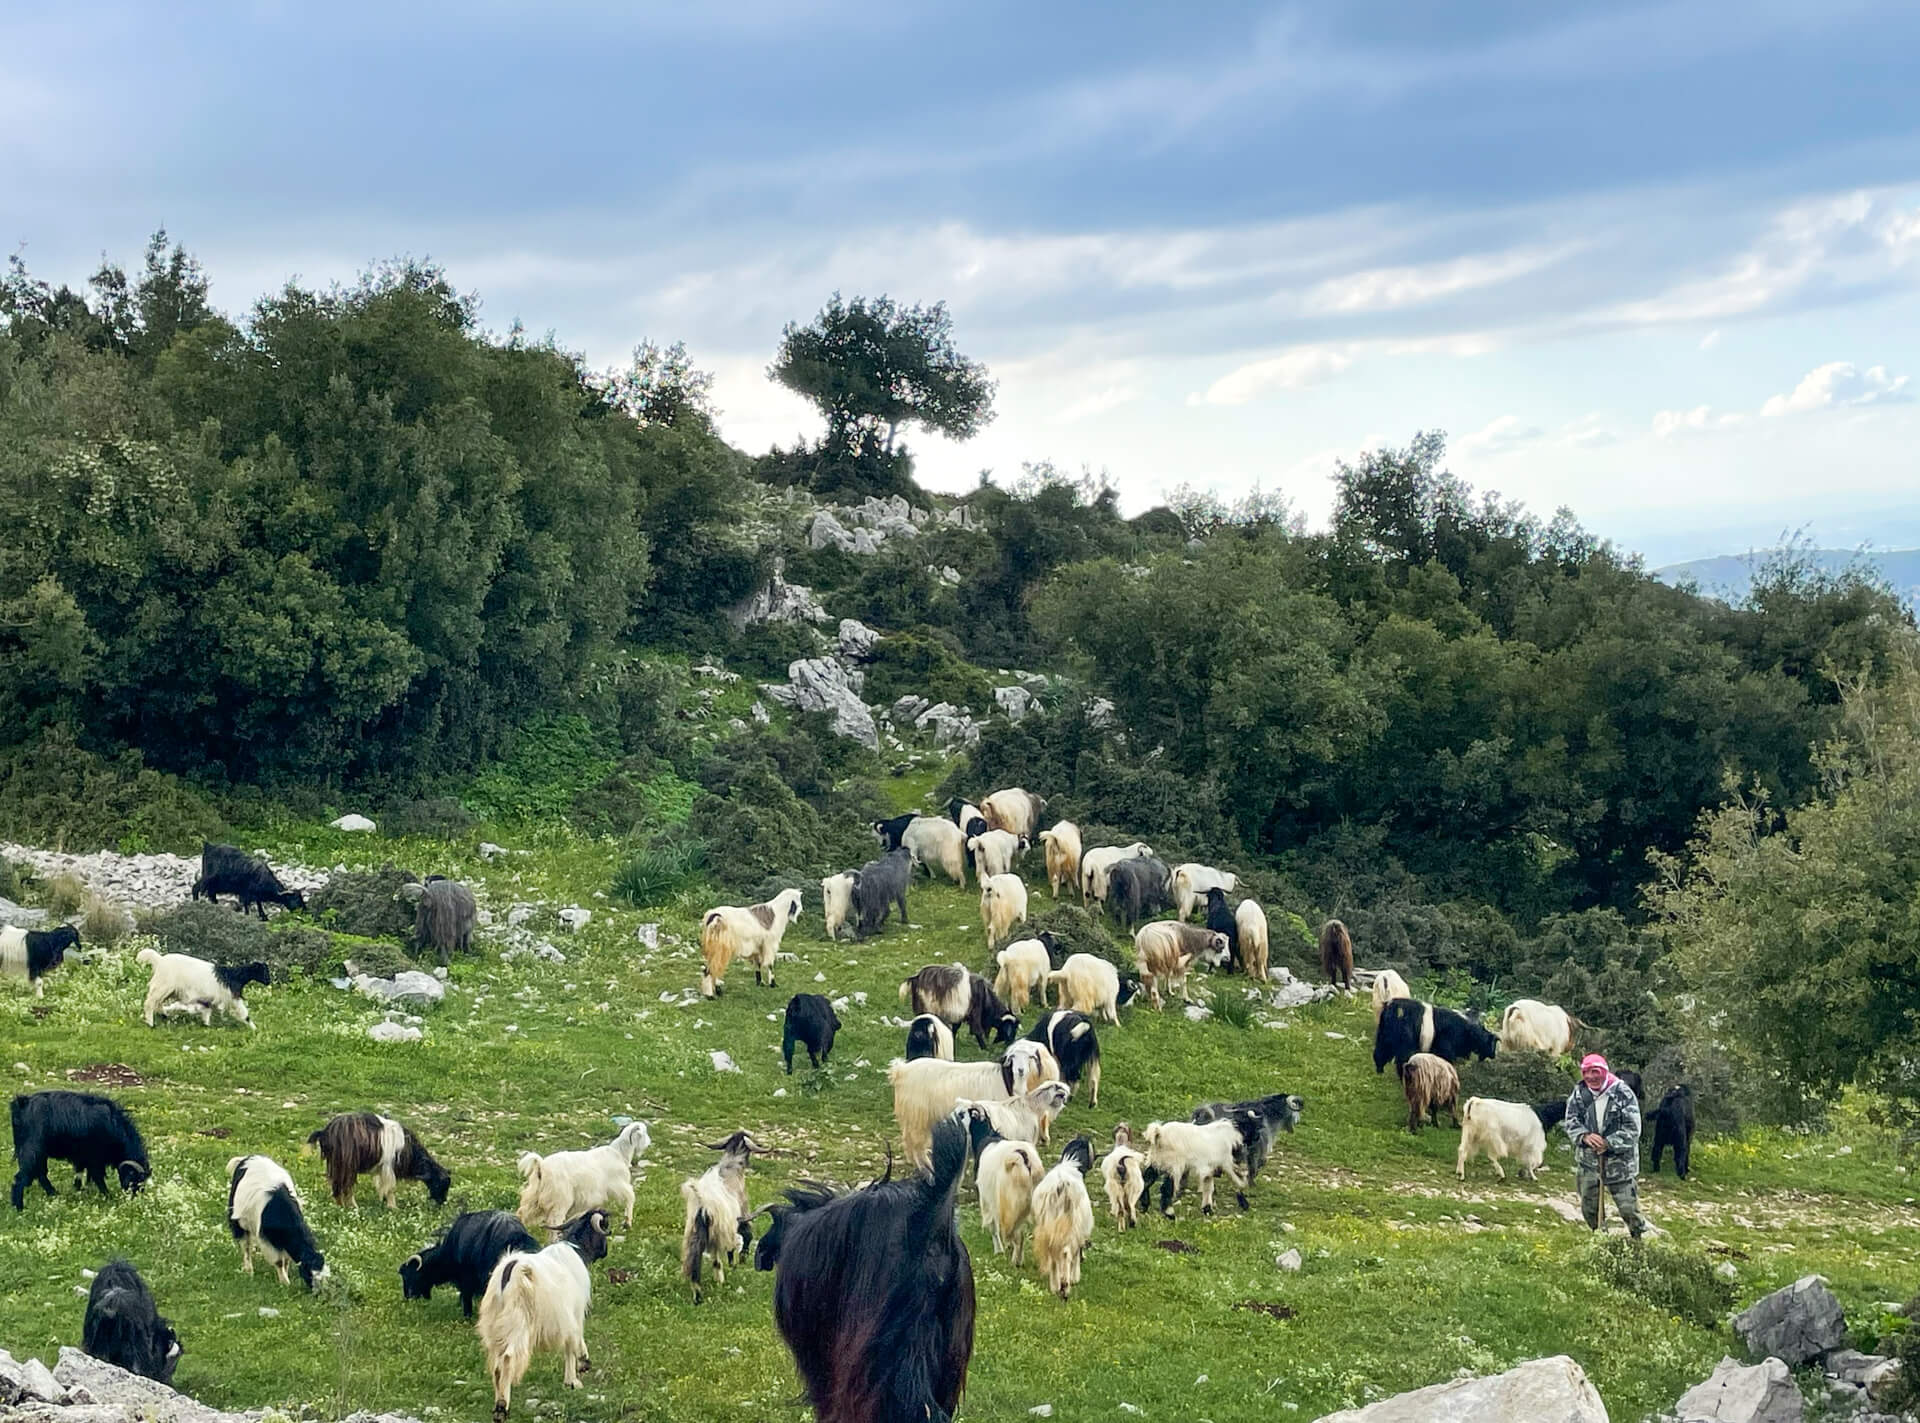 A herd of goats grazing with their shepherd